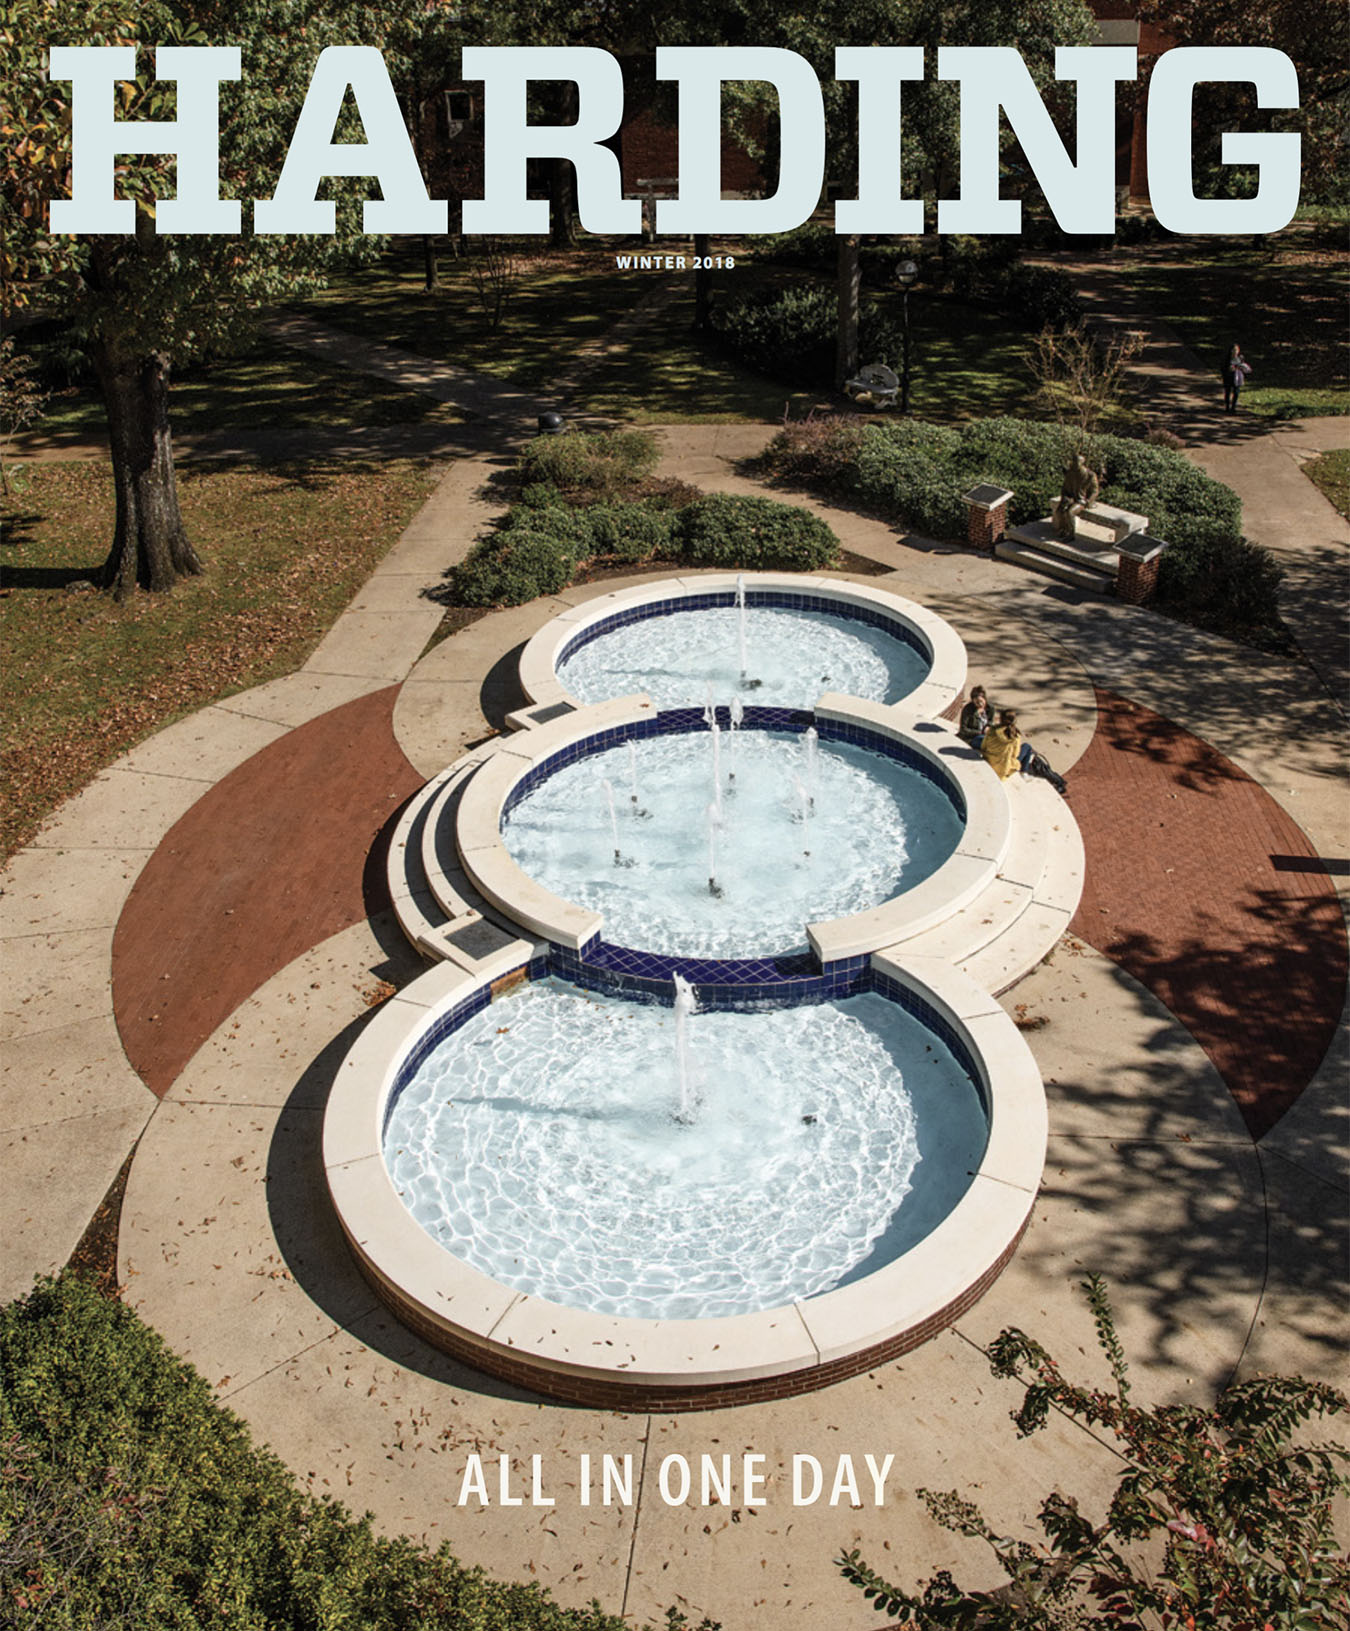 https://wordpress.harding.edu/harding/files/2018/02/Winter-2018-mag-cover.jpg